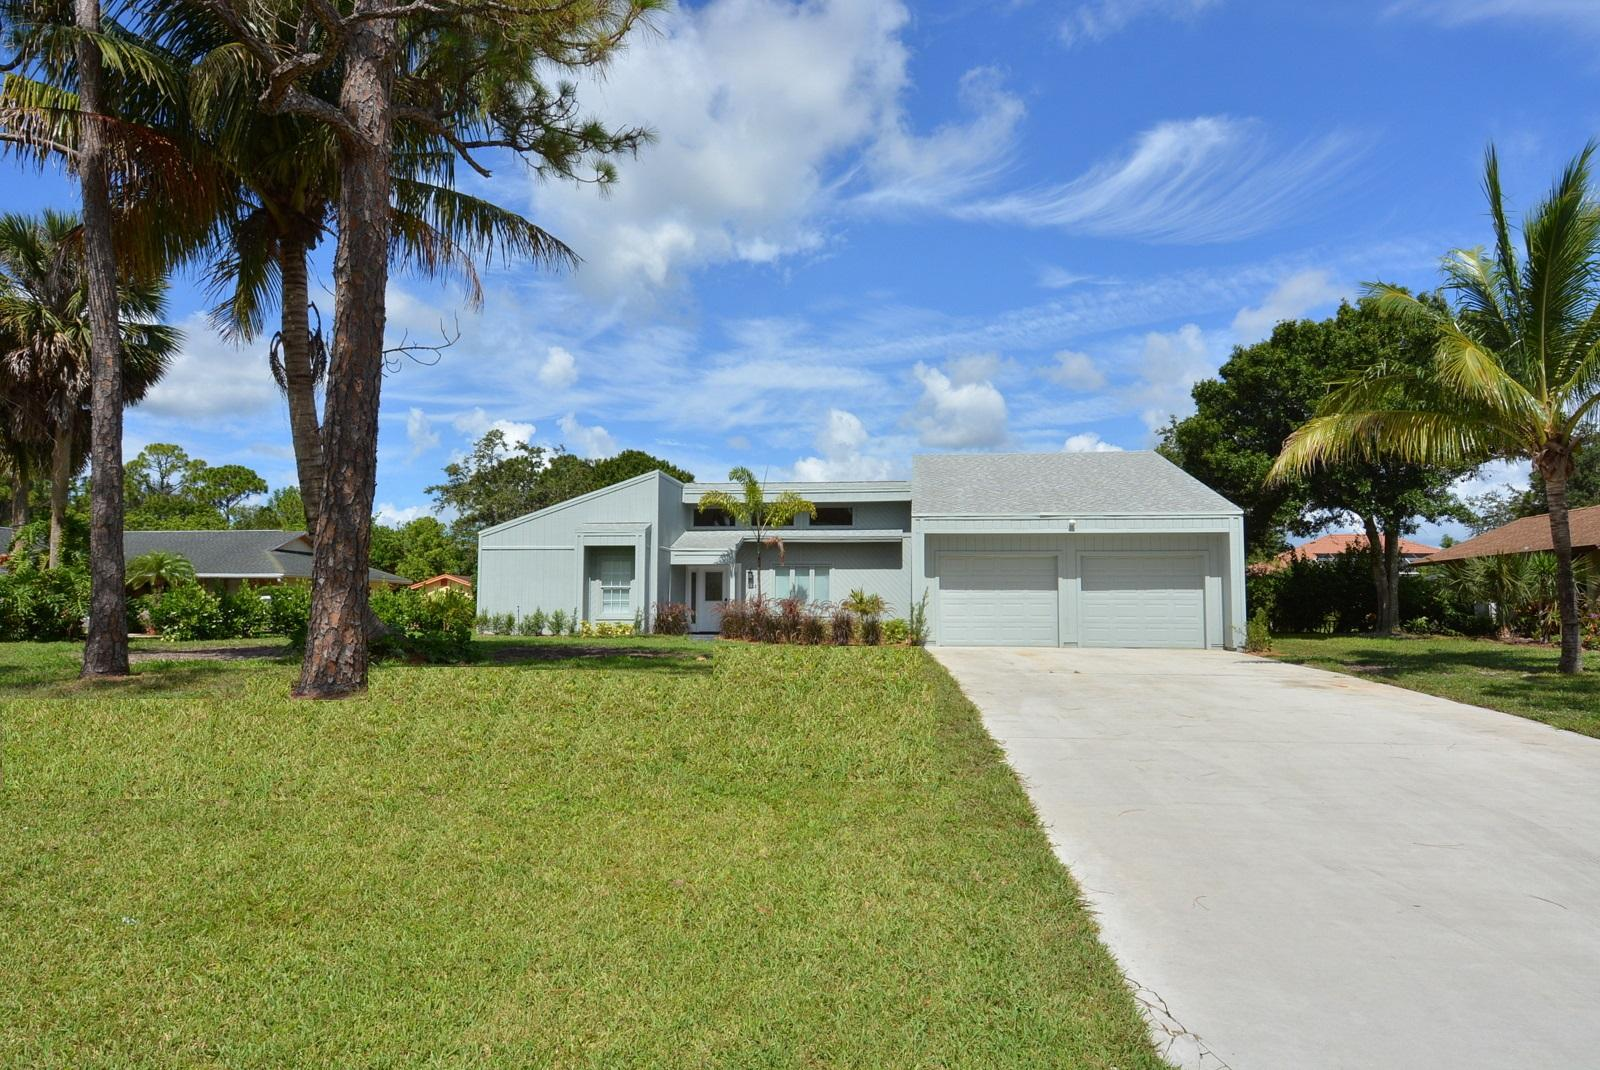 1132 Willow Palm City 34990